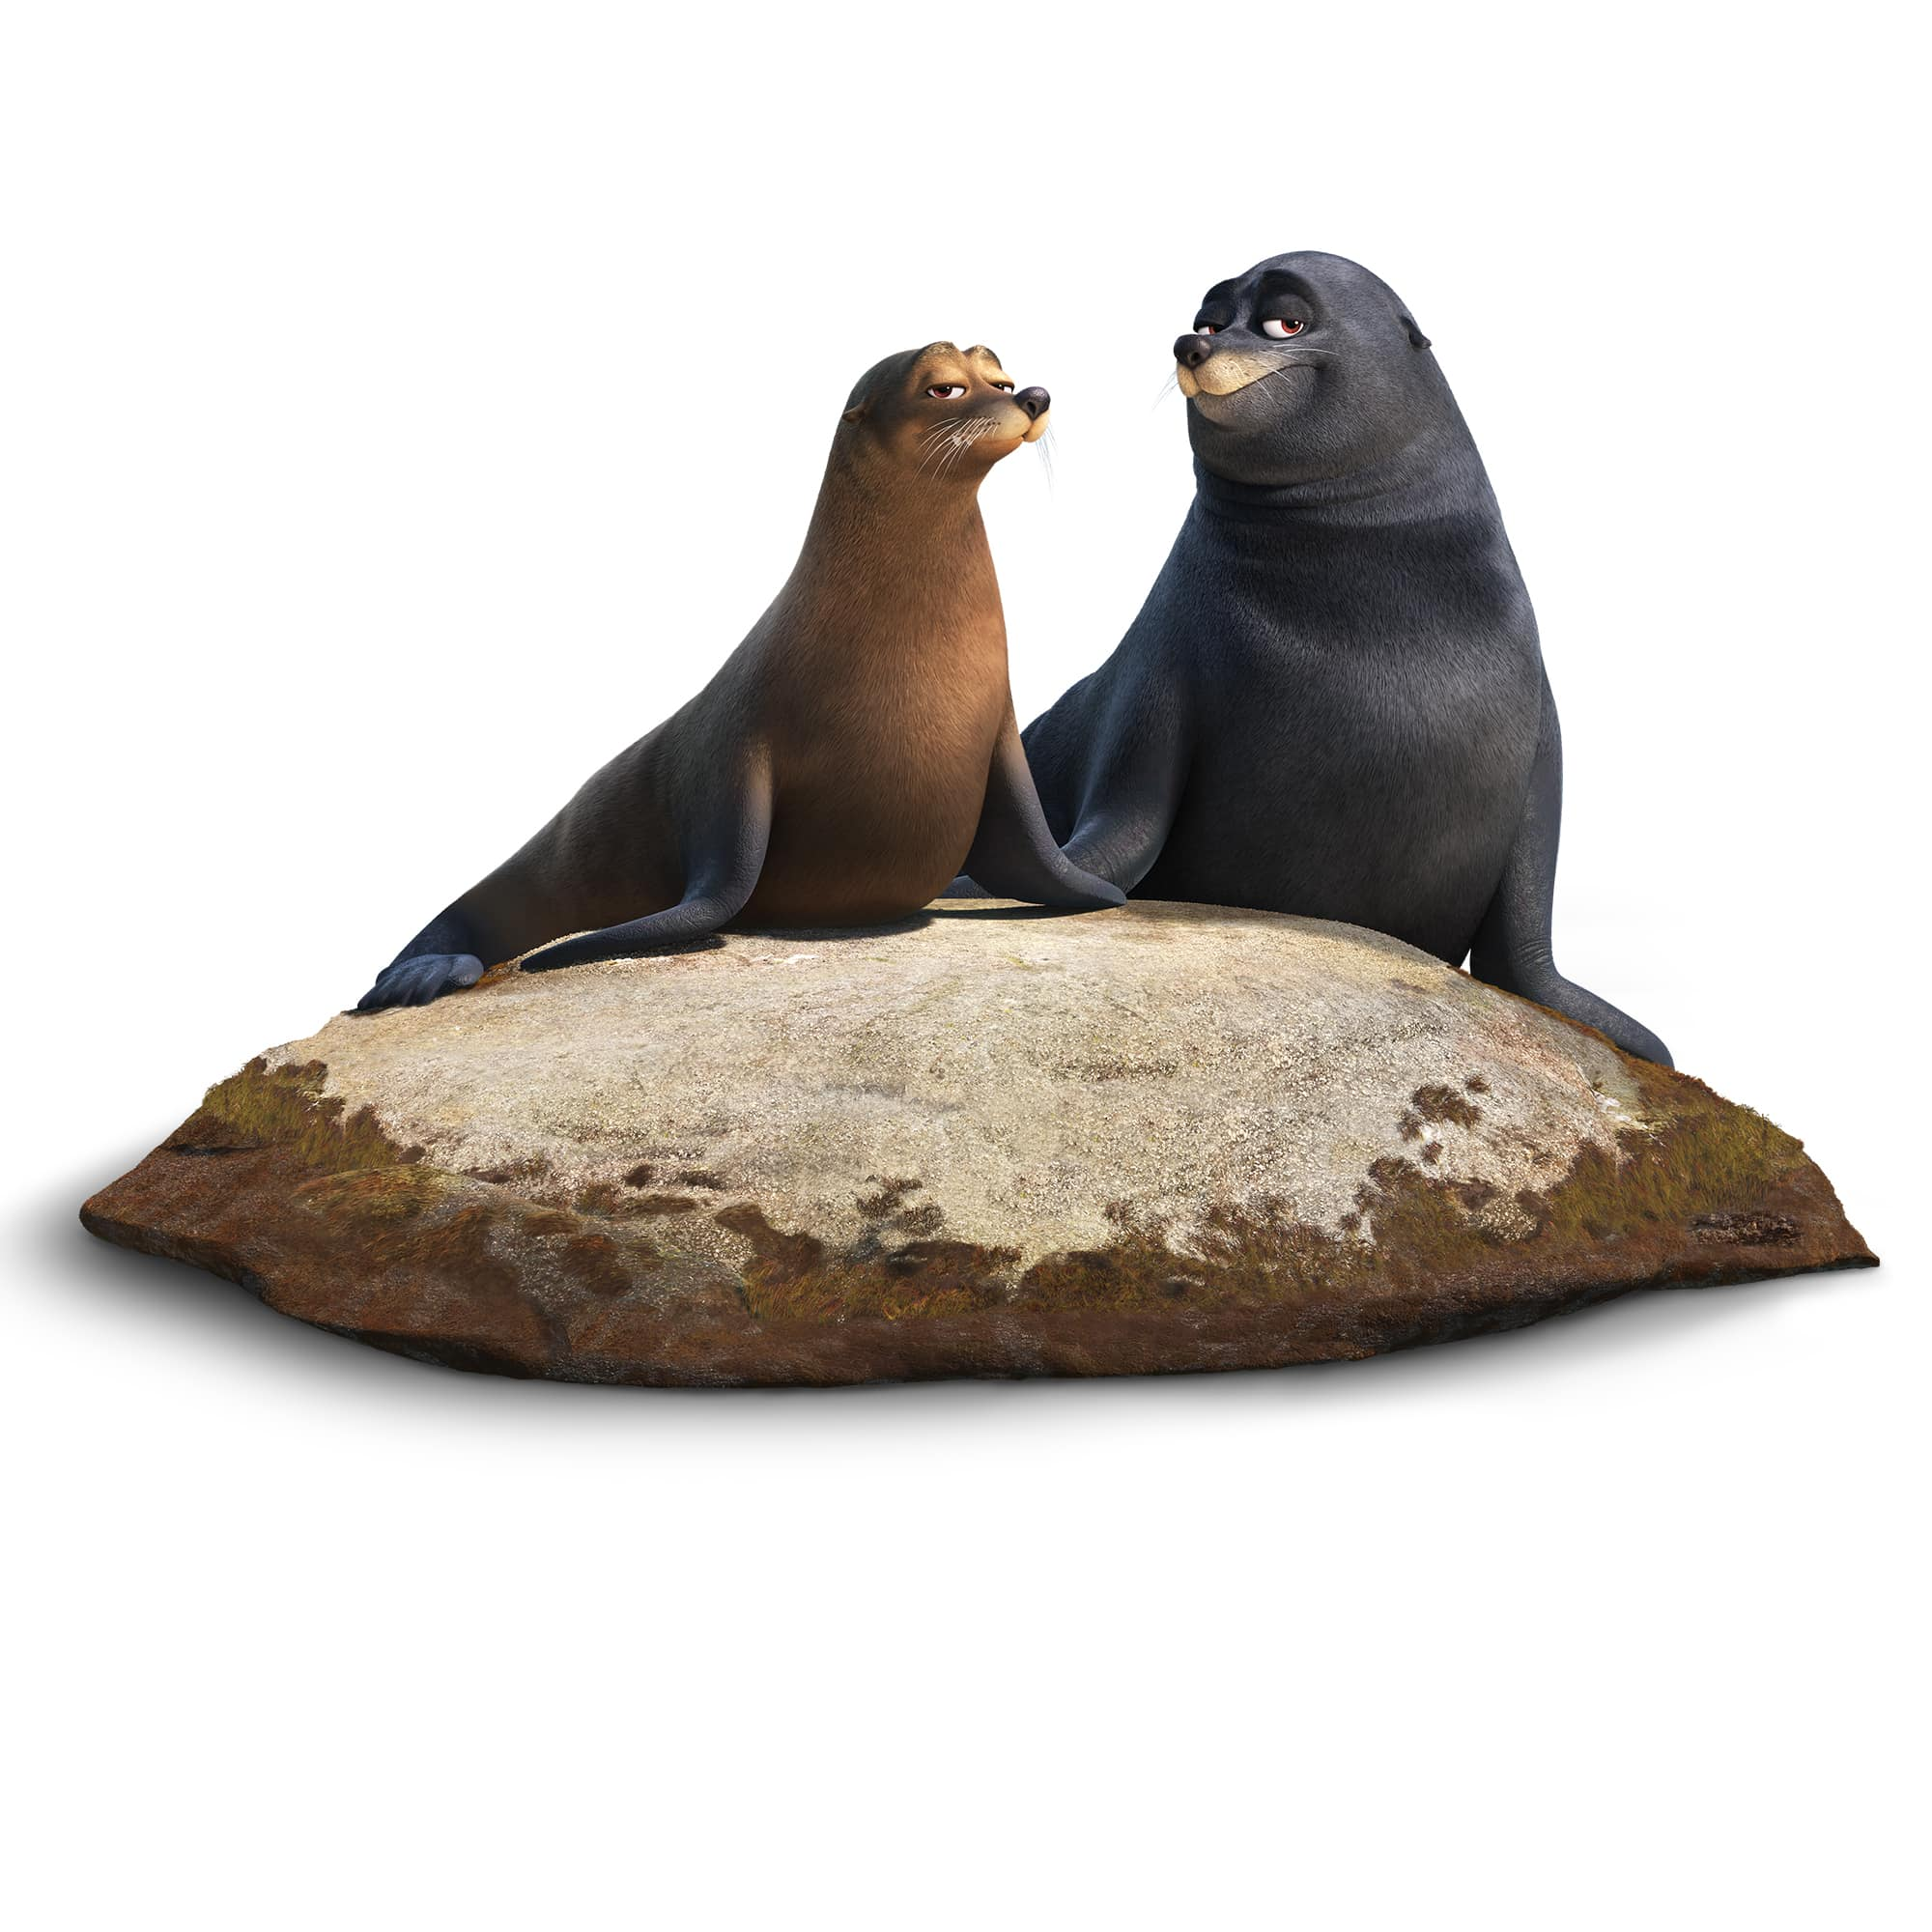 FINDING DORY - Pictured (L-R): RUDDER (voice of Dominic West) and FLUKE (voice of Idris Elba) are a pair of lazy sea lions who were rehabilitated at the Marine Life Institute. Marlin and Nemo find them snoozing on a warm—and highly coveted—rock just outside the center. These sea lions really enjoy their down time and would rather not be bothered mid nap—but their bark is far worse than their bite.. ©2016 Disney•Pixar. All Rights Reserved.